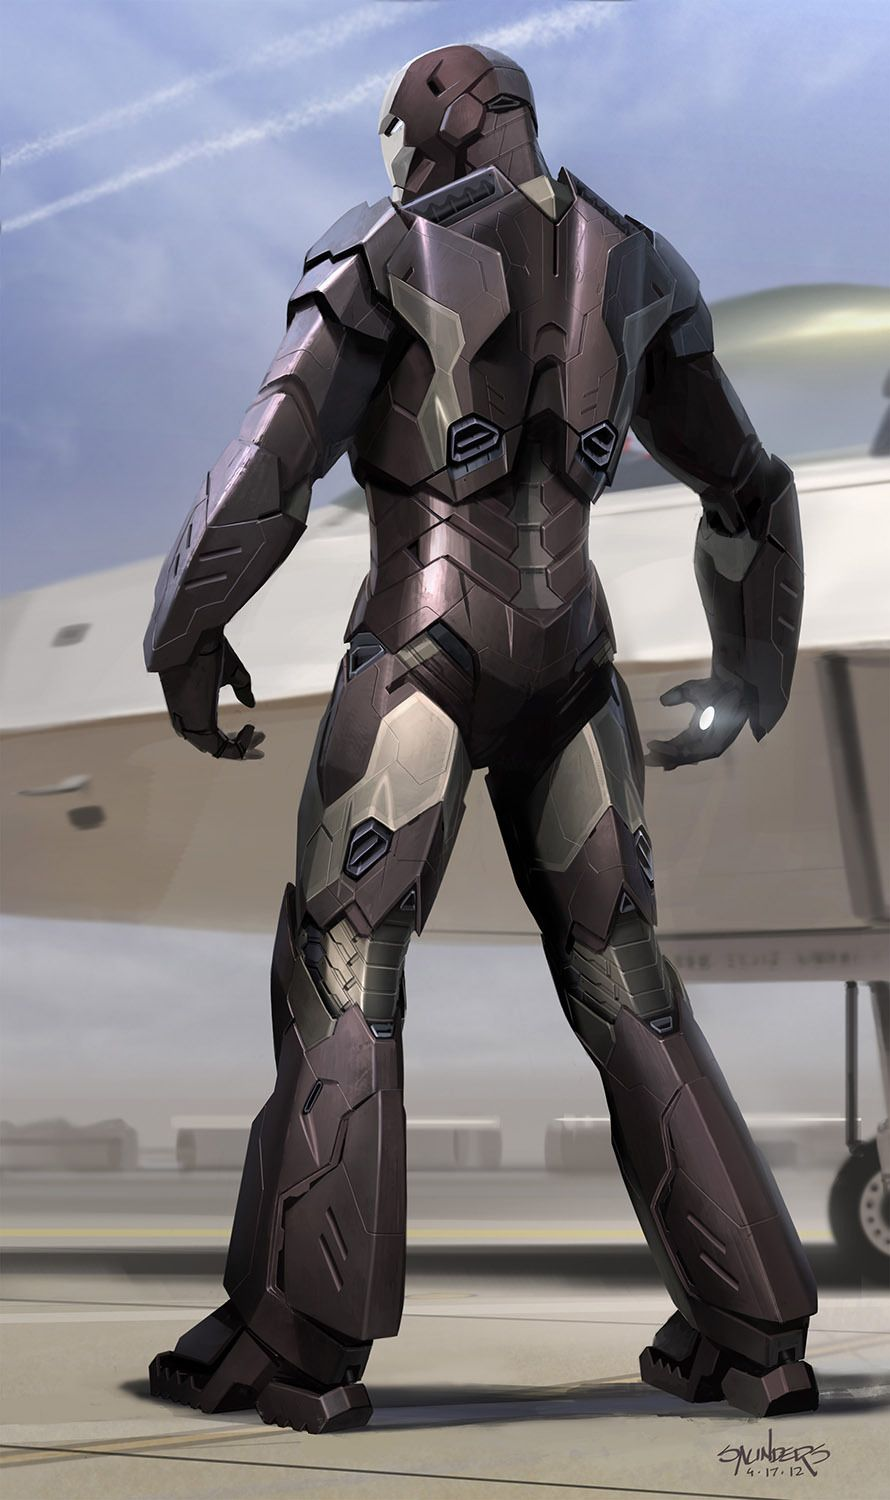 Iron Man becomes a guided missile, in stunning new concept art